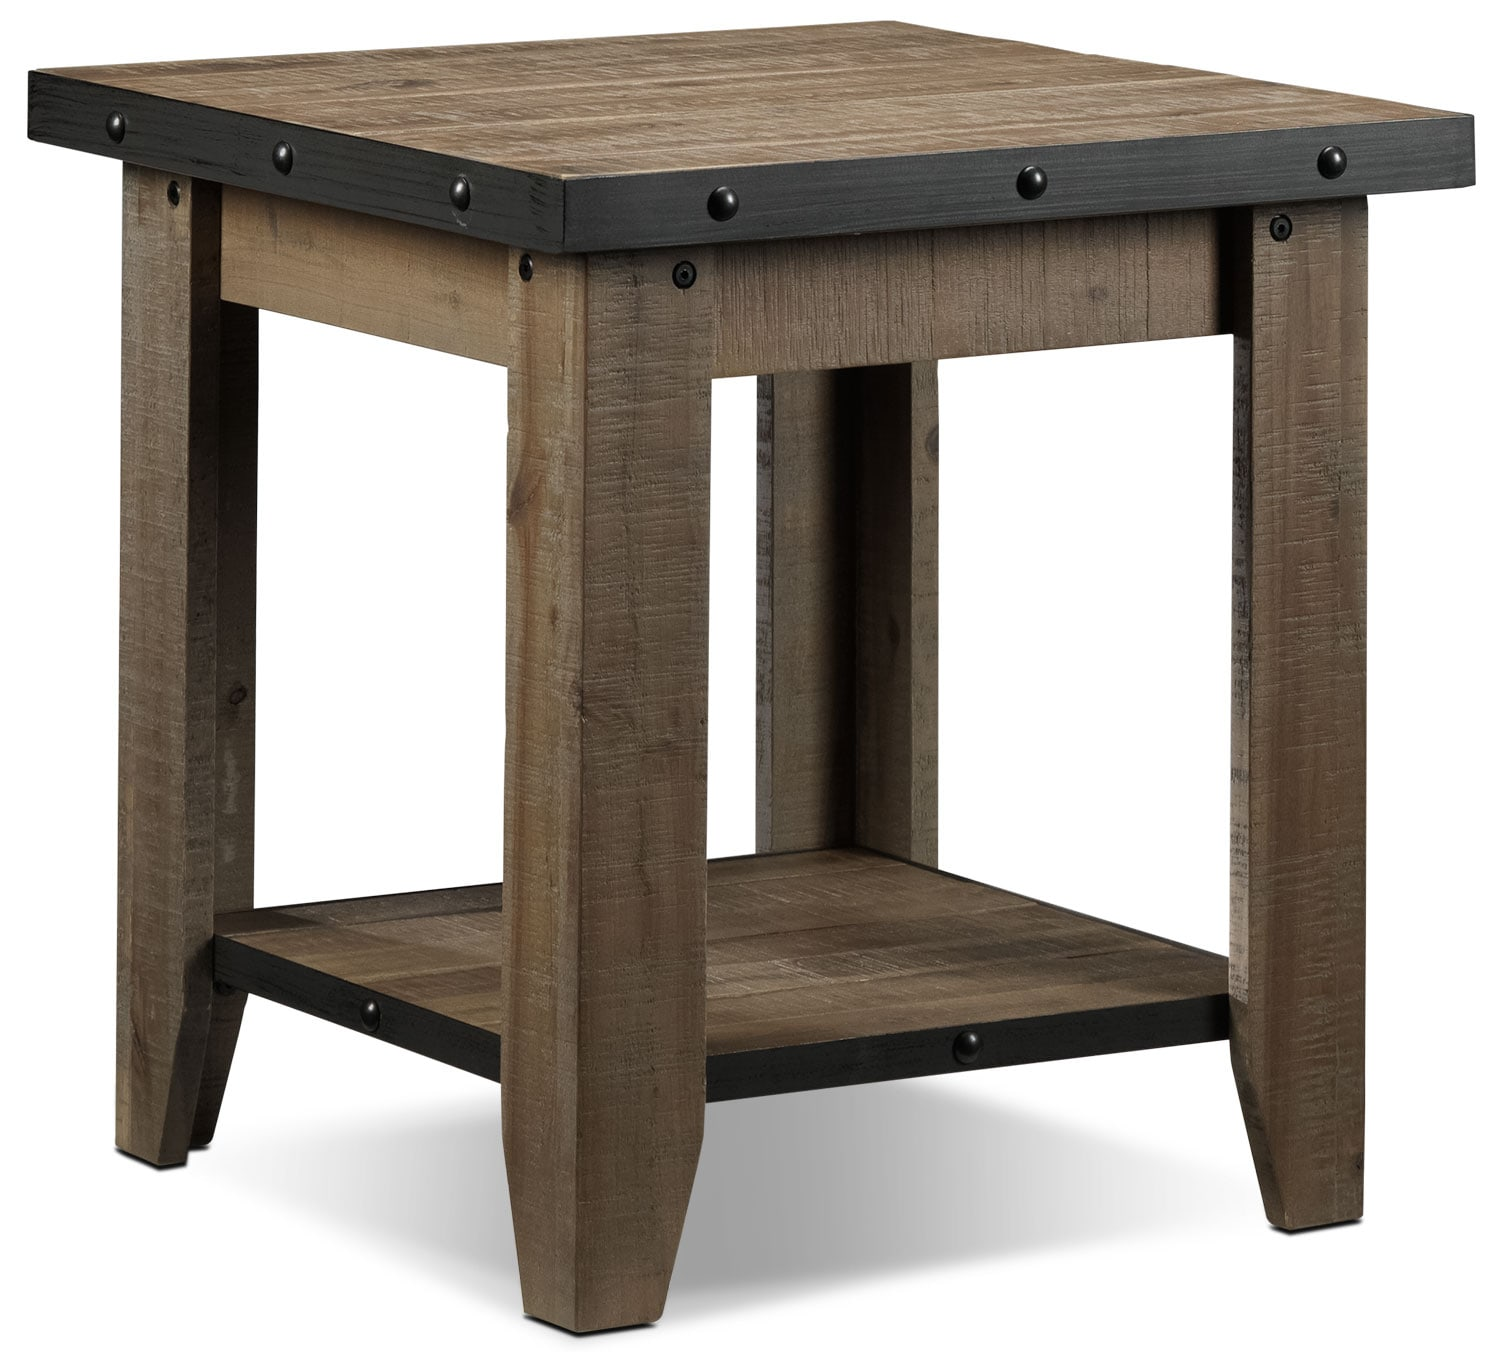 Accent and Occasional Furniture - Walton End Table - Natural